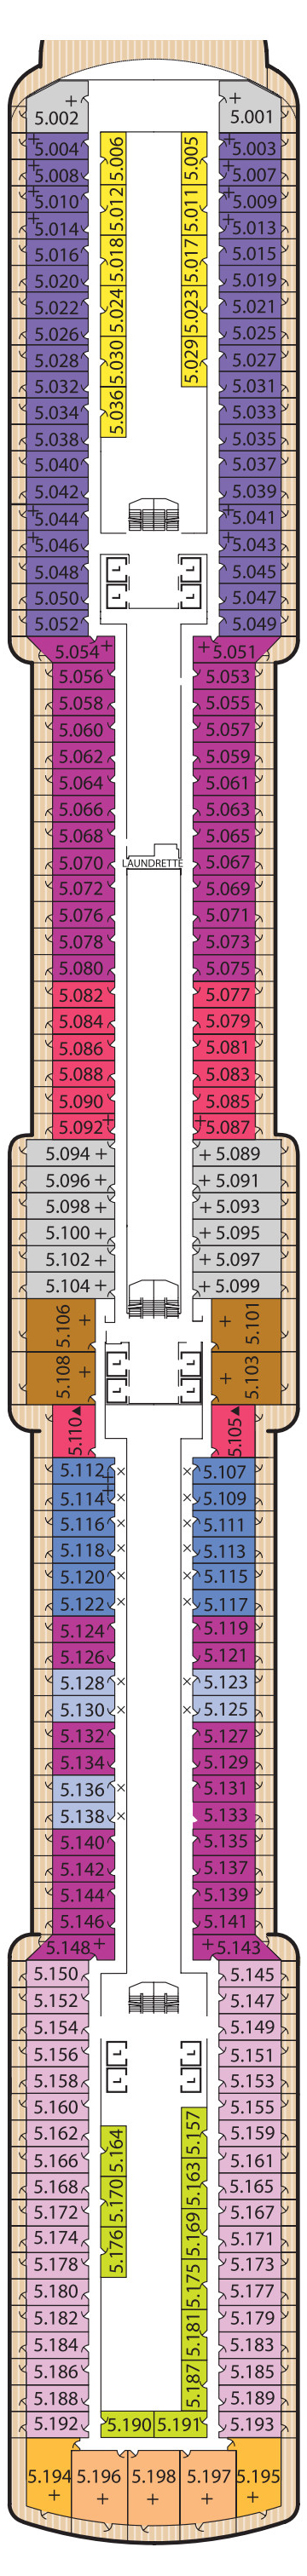 Queen Elizabeth Deck 5 layout